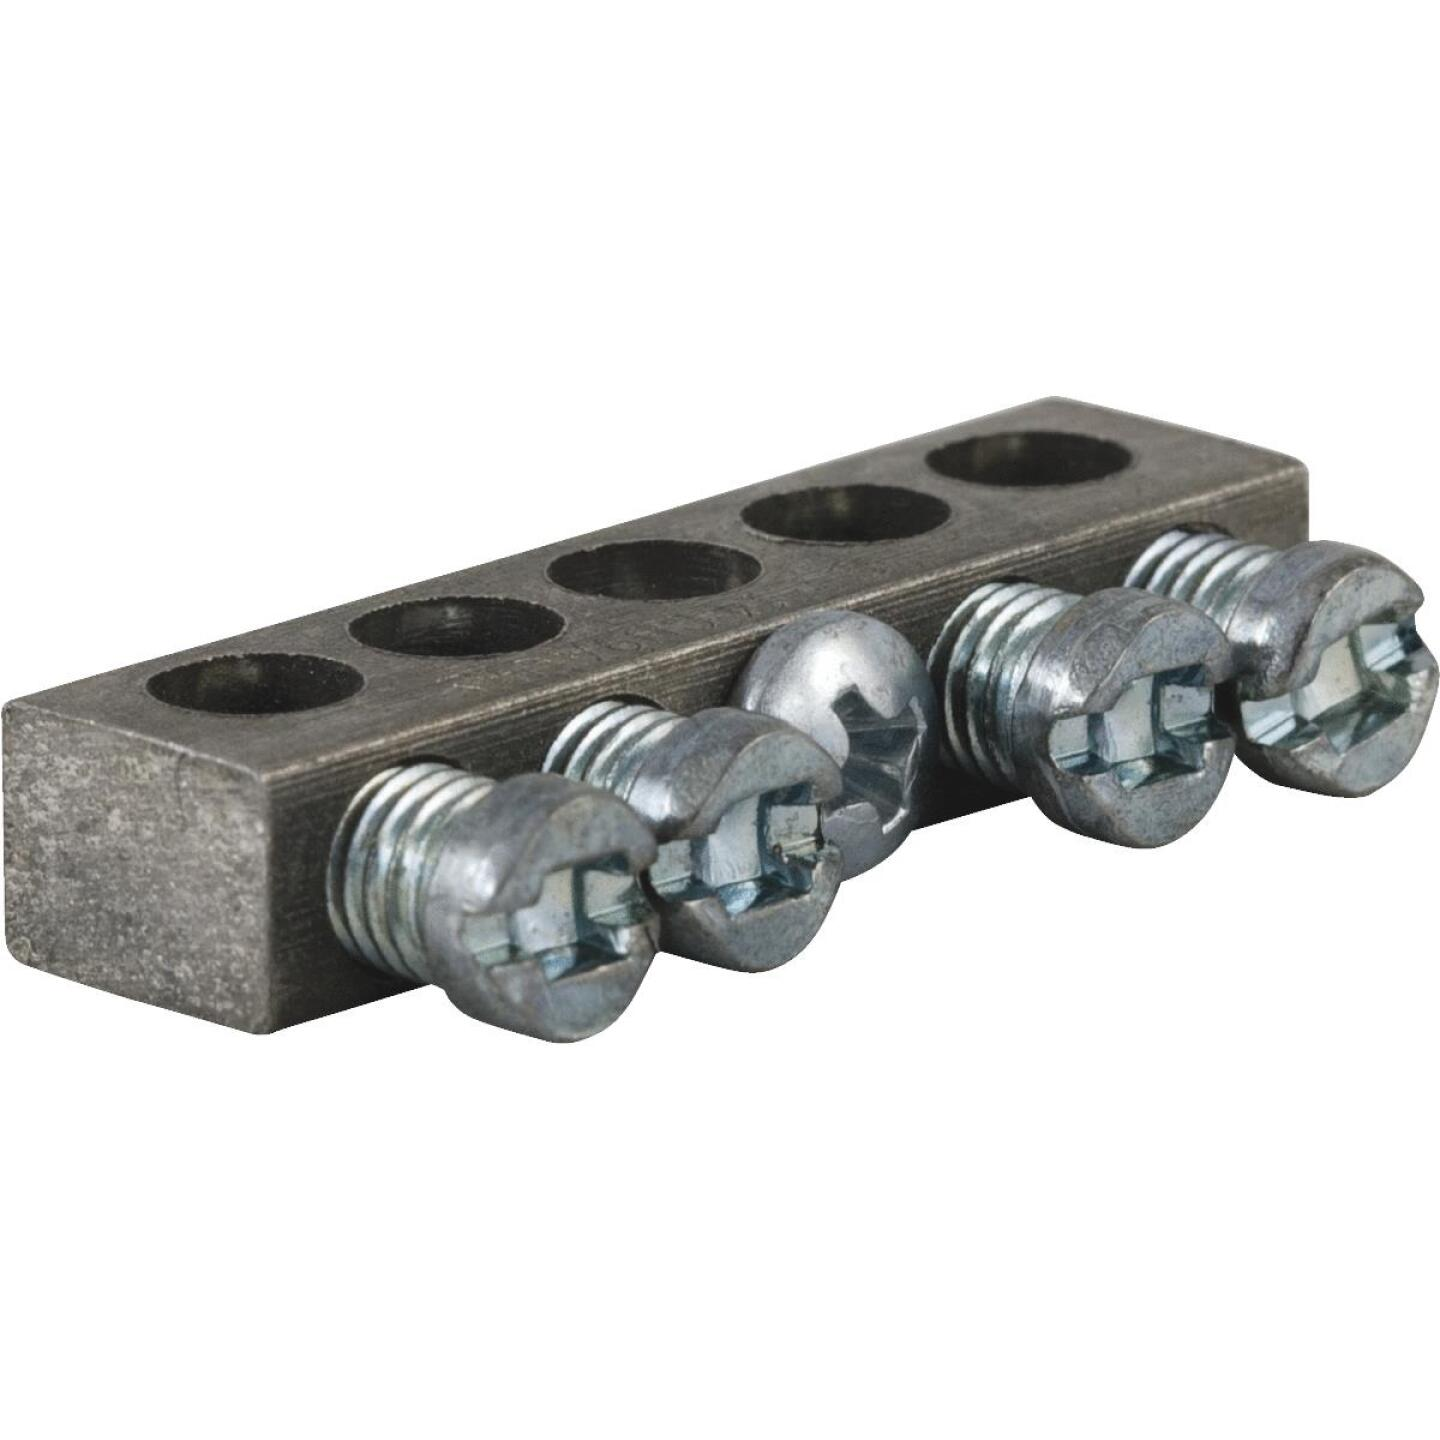 Square D 4-Terminal QO & Homeline Aluminum Ground Bar Kit Image 1